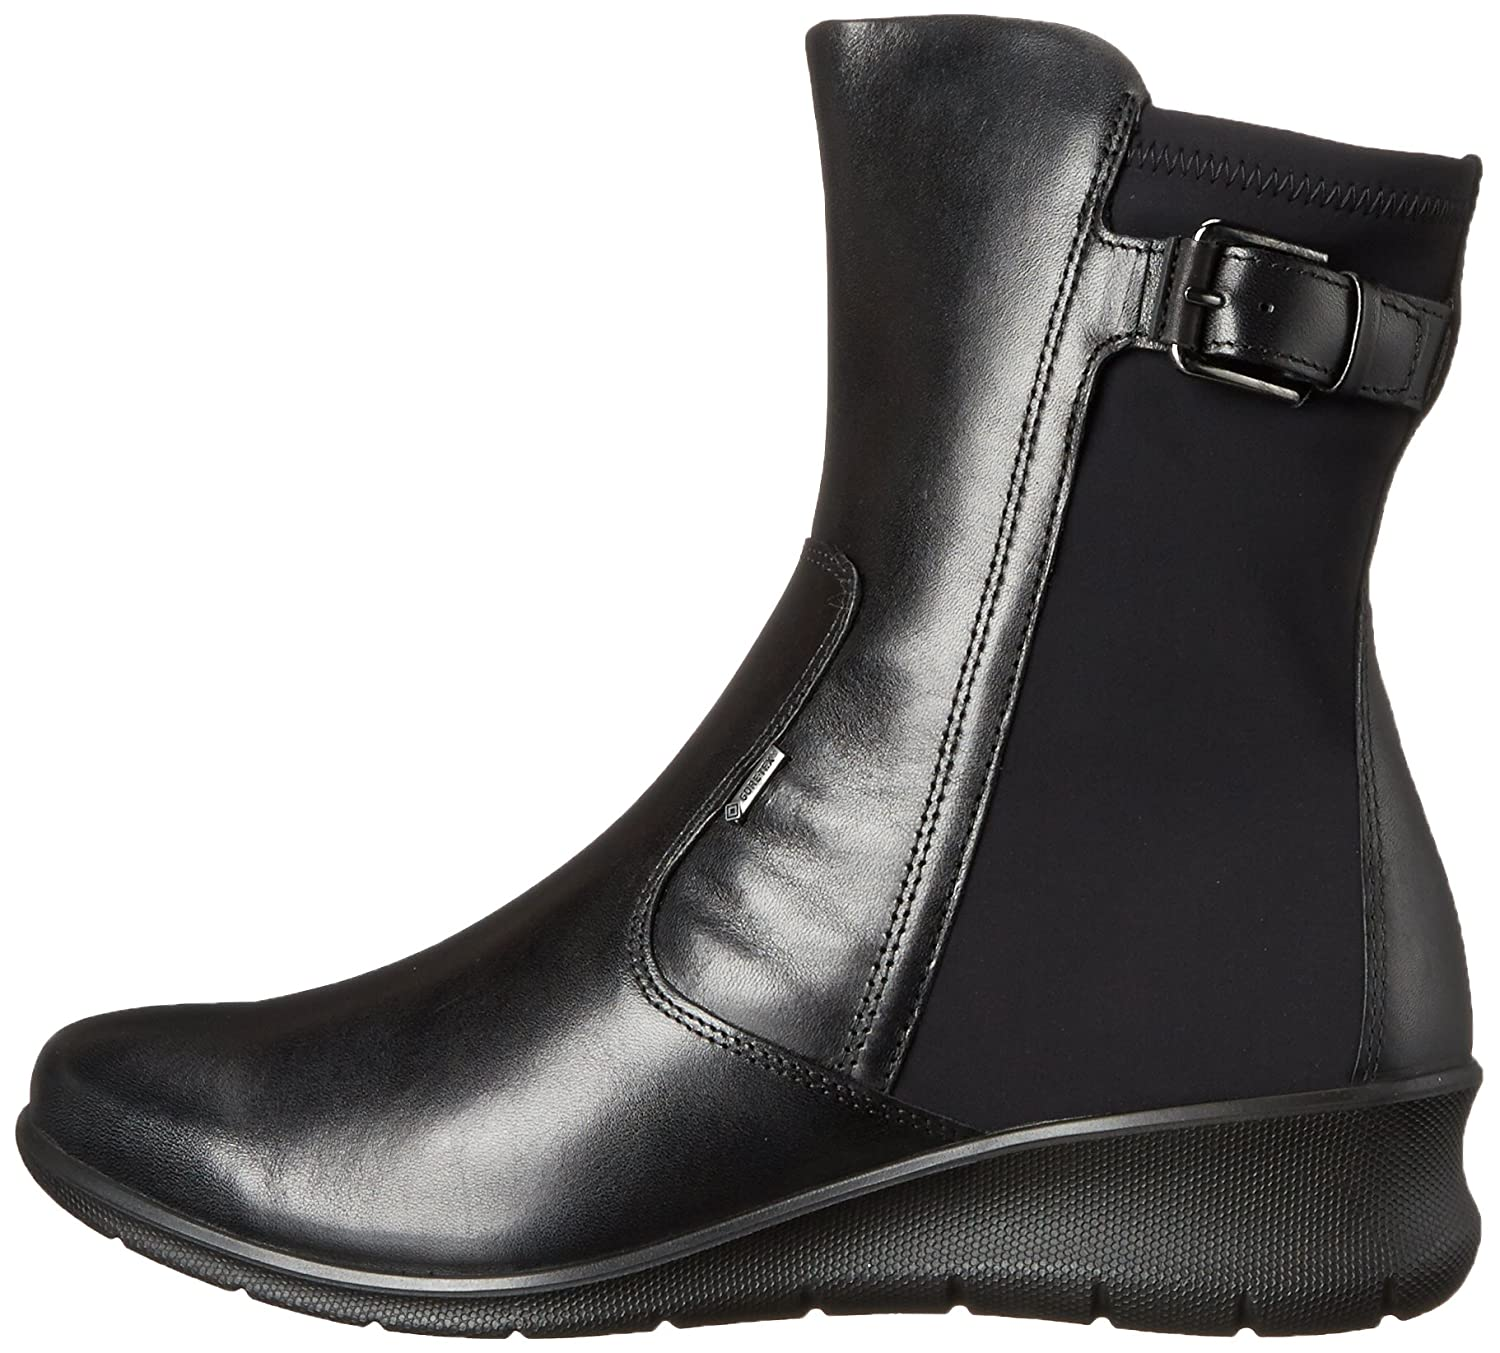 ECCO Footwear Womens Babett GTX Boot B00RC8ZMZ6 40 EU/9-9.5 M US|Black